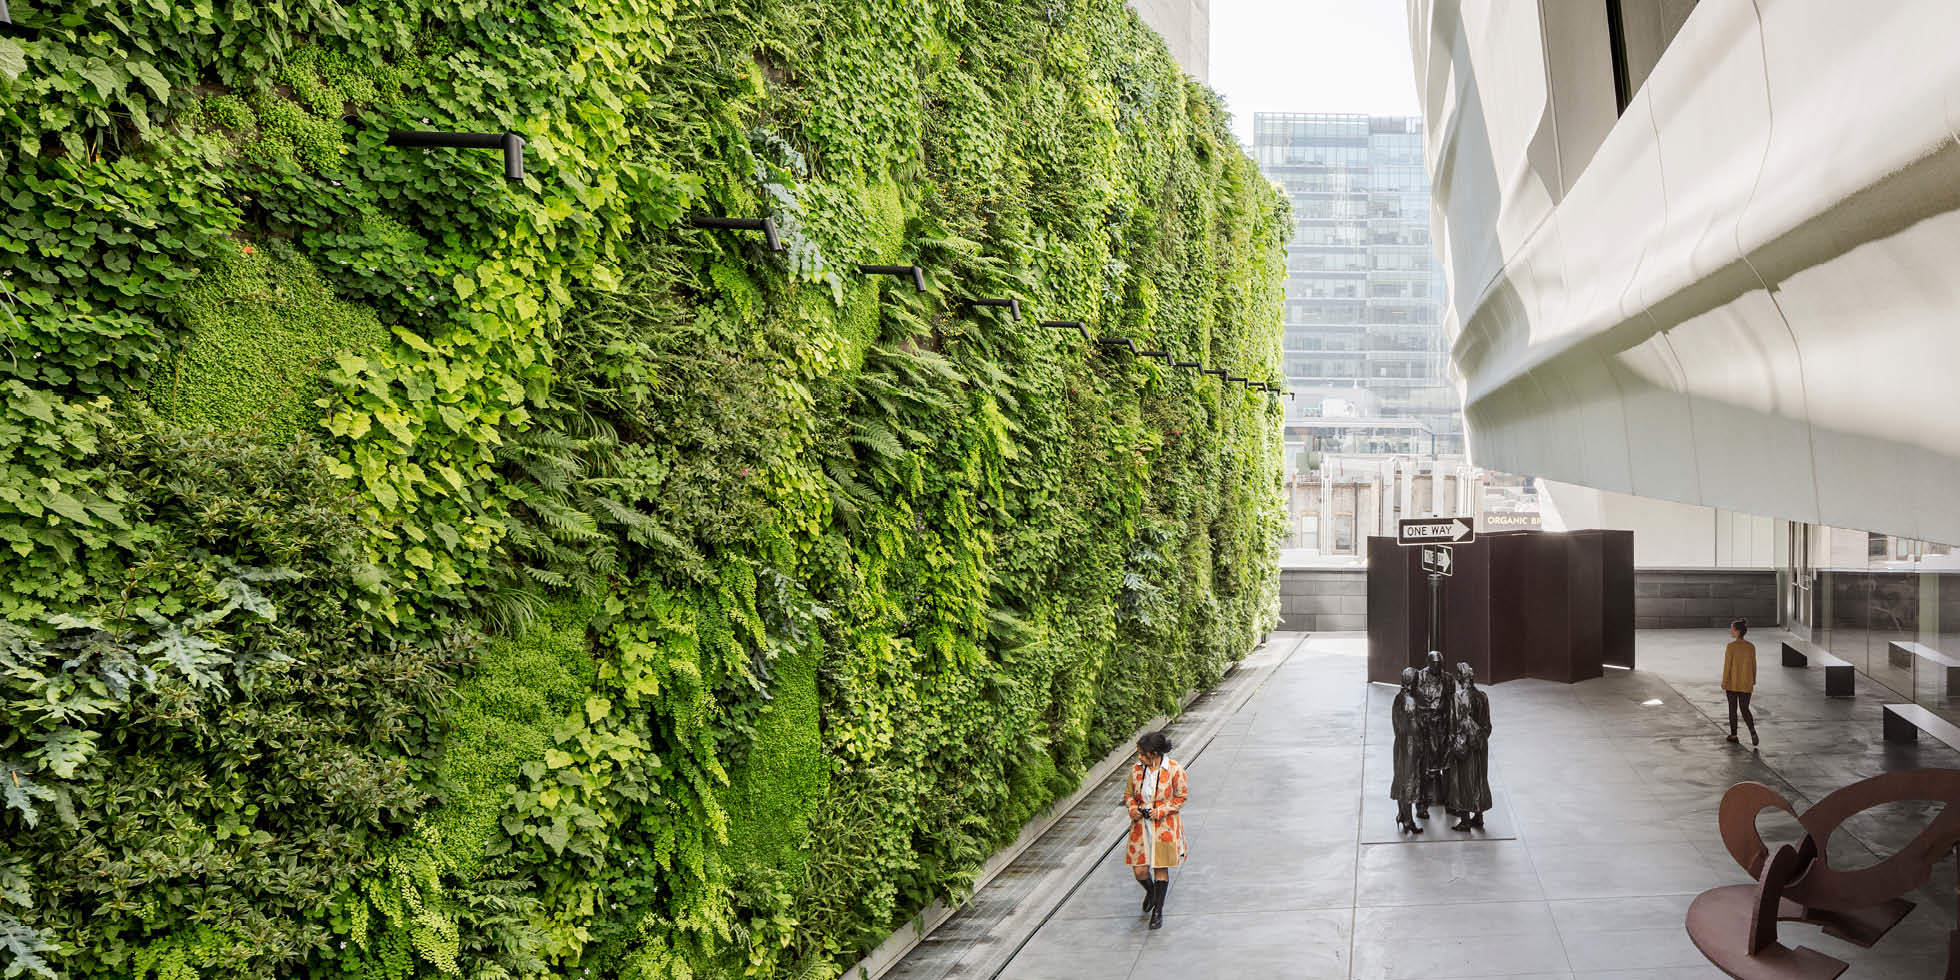 Green wall what is it and how to build one your - Building a living wall ...